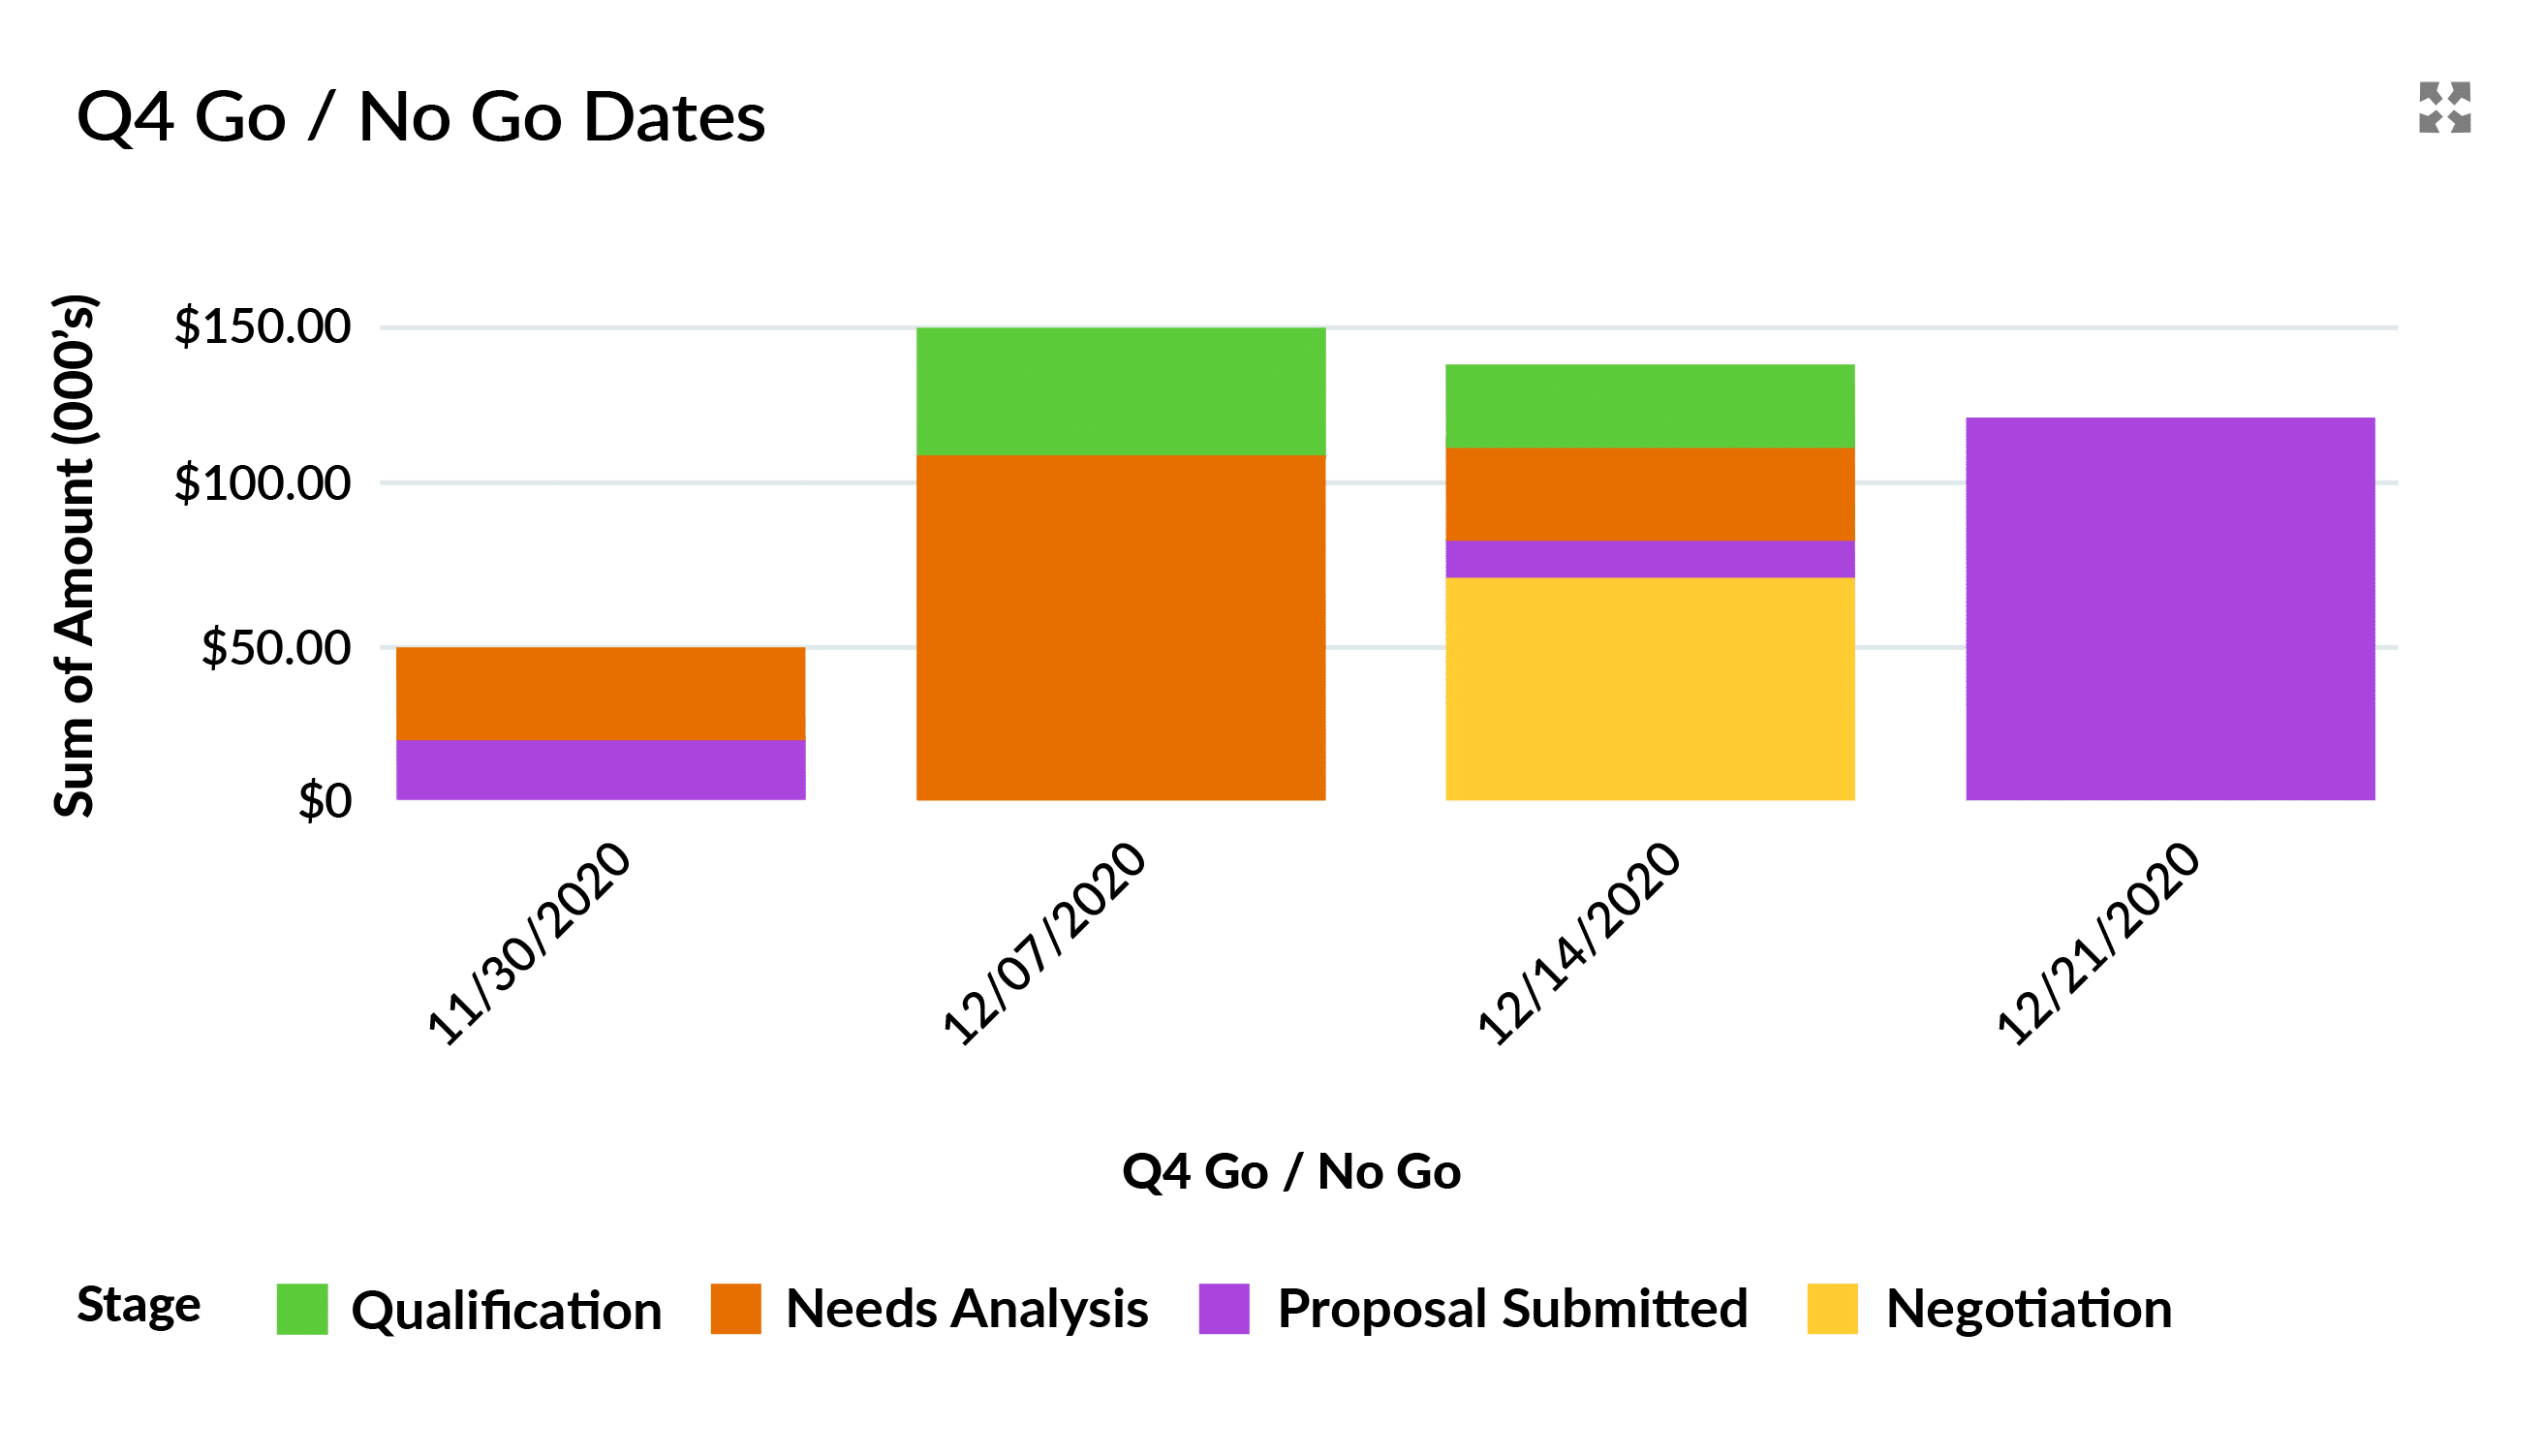 A Salesforce Dashboard Chart including the Q4 Go / No Go date